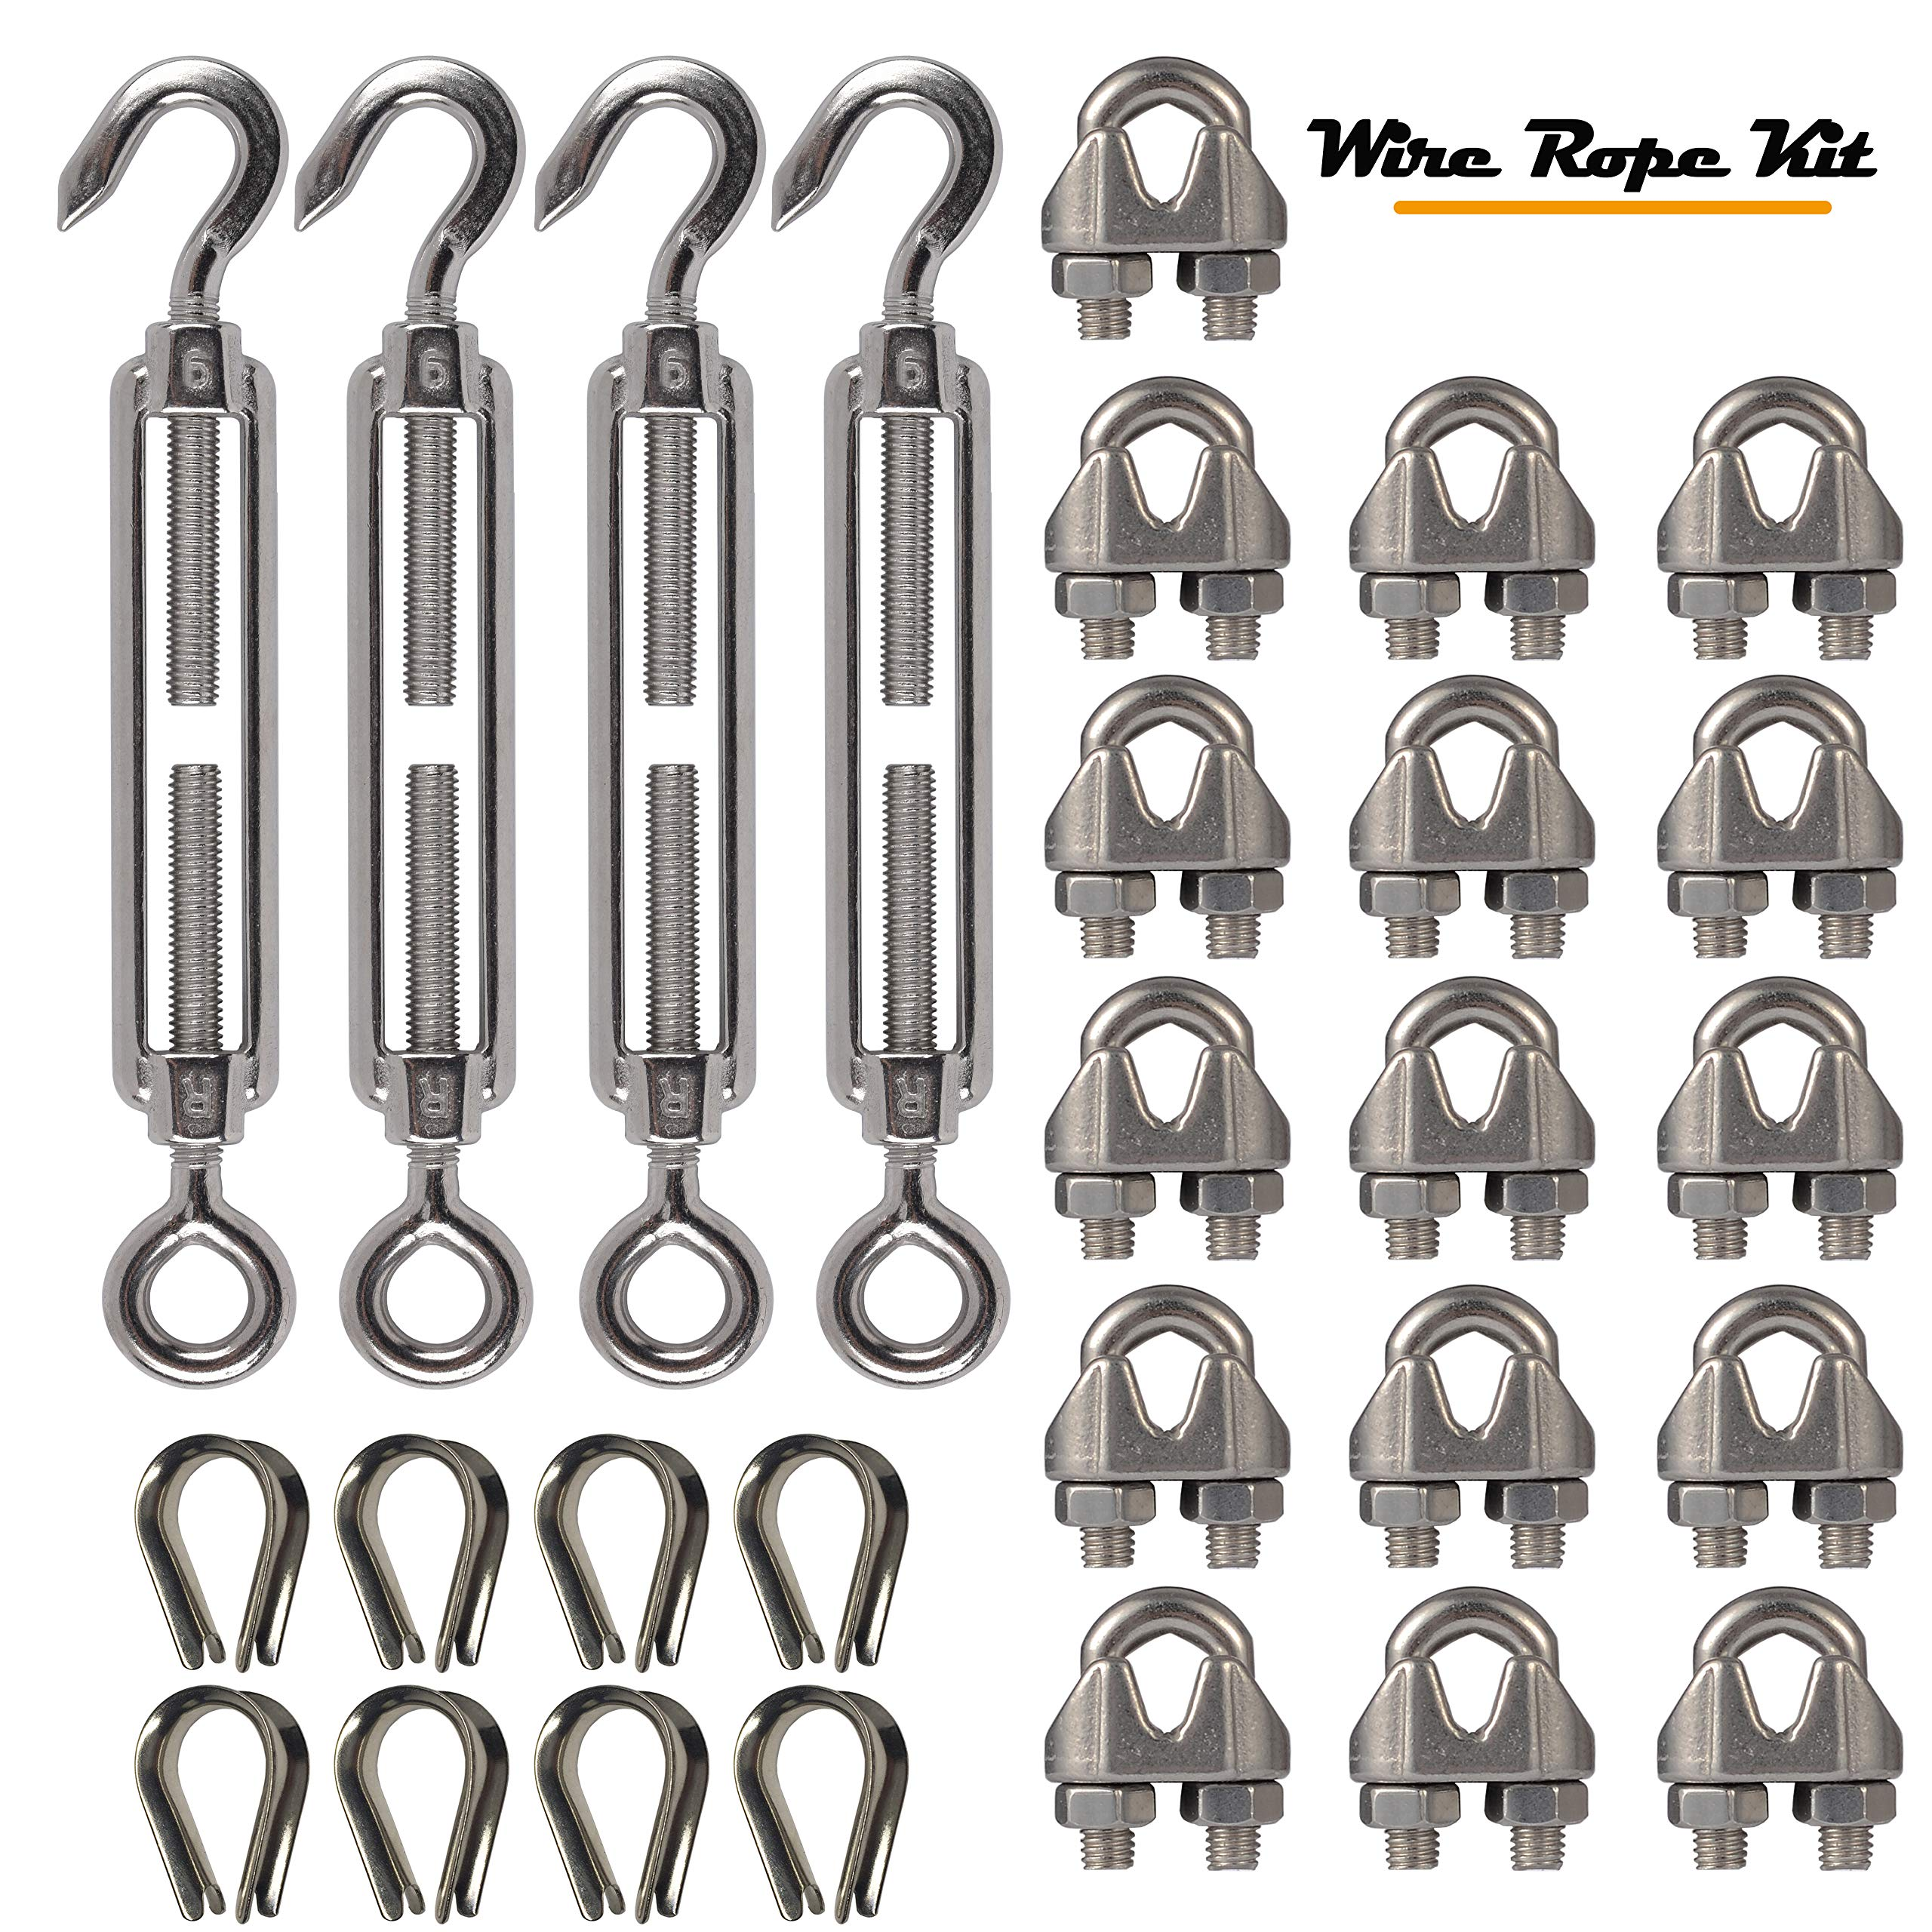 4-Pcs Turnbuckle/Tension(Eye&Hook, M6), 16-Pcs 1/8 Inch Wire Rope Cable Clip/Clamp(M3), 8-Pcs Thimble(M3), Stainless Steel Kit by Kjxxkj